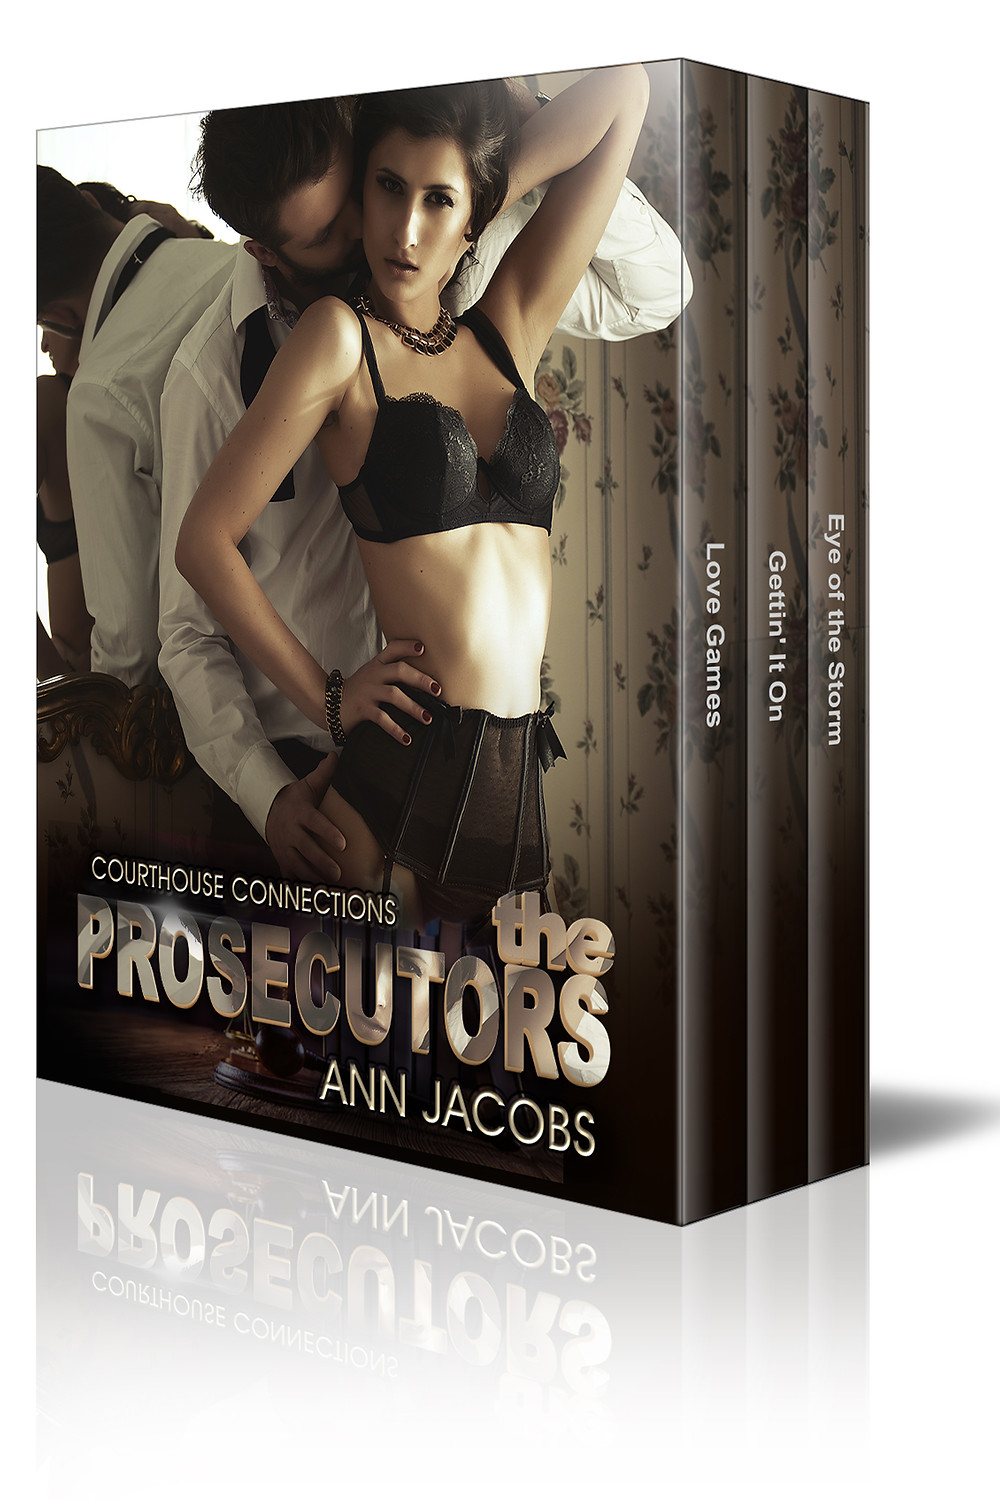 AnnJacobs_CourthouseConnections_BoxSet_The Prosecutors_Kindle.jpg